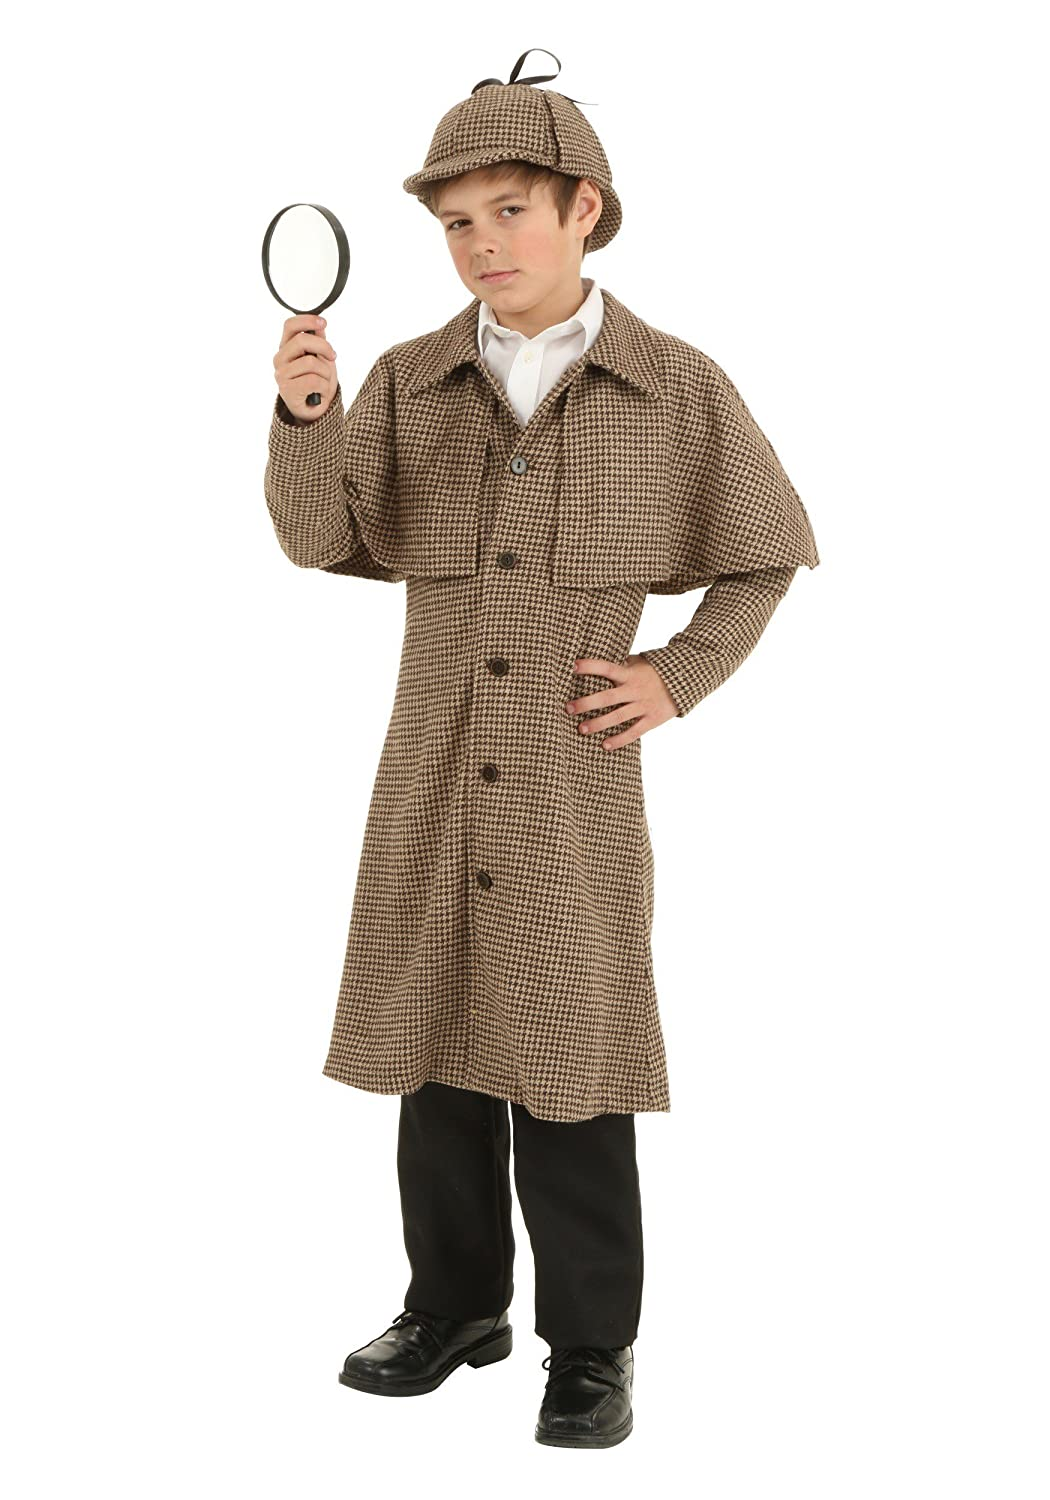 Steampunk Kids Costumes | Girl, Boy, Baby, Toddler Child Sherlock Holmes Costume $29.99 AT vintagedancer.com